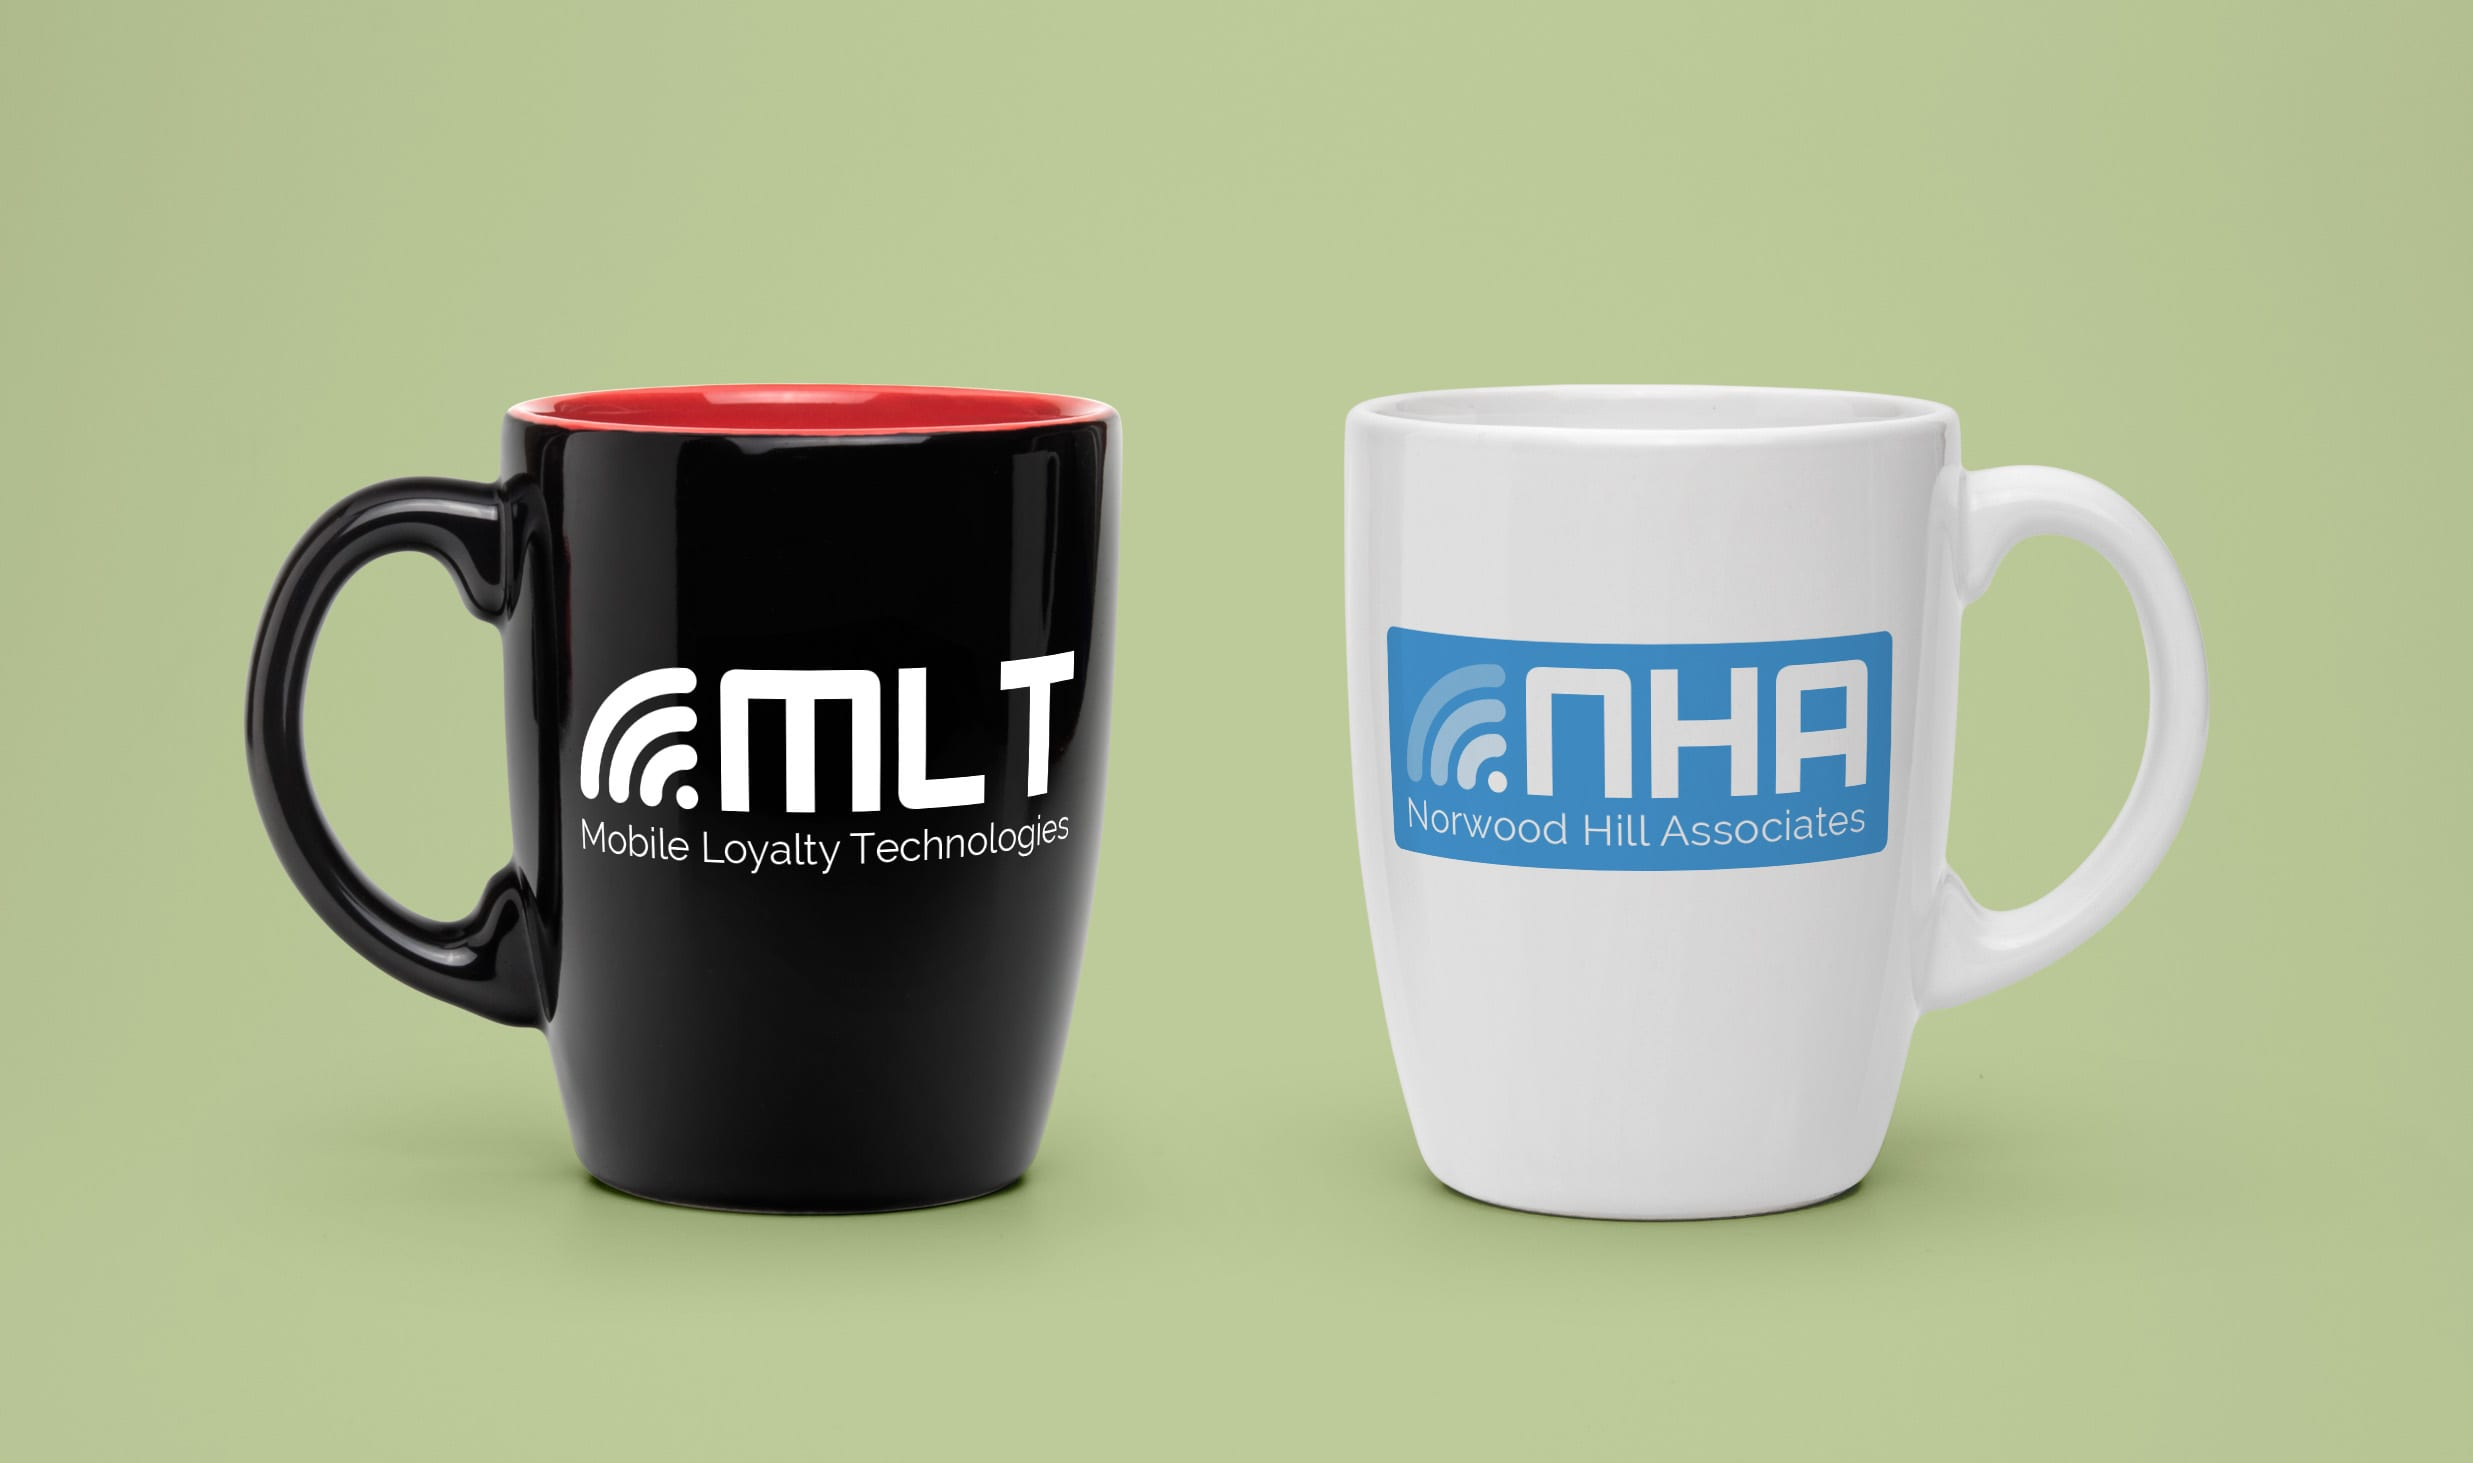 logo designs for Mobile Loyalty Technologies and Norwood Hills Associates